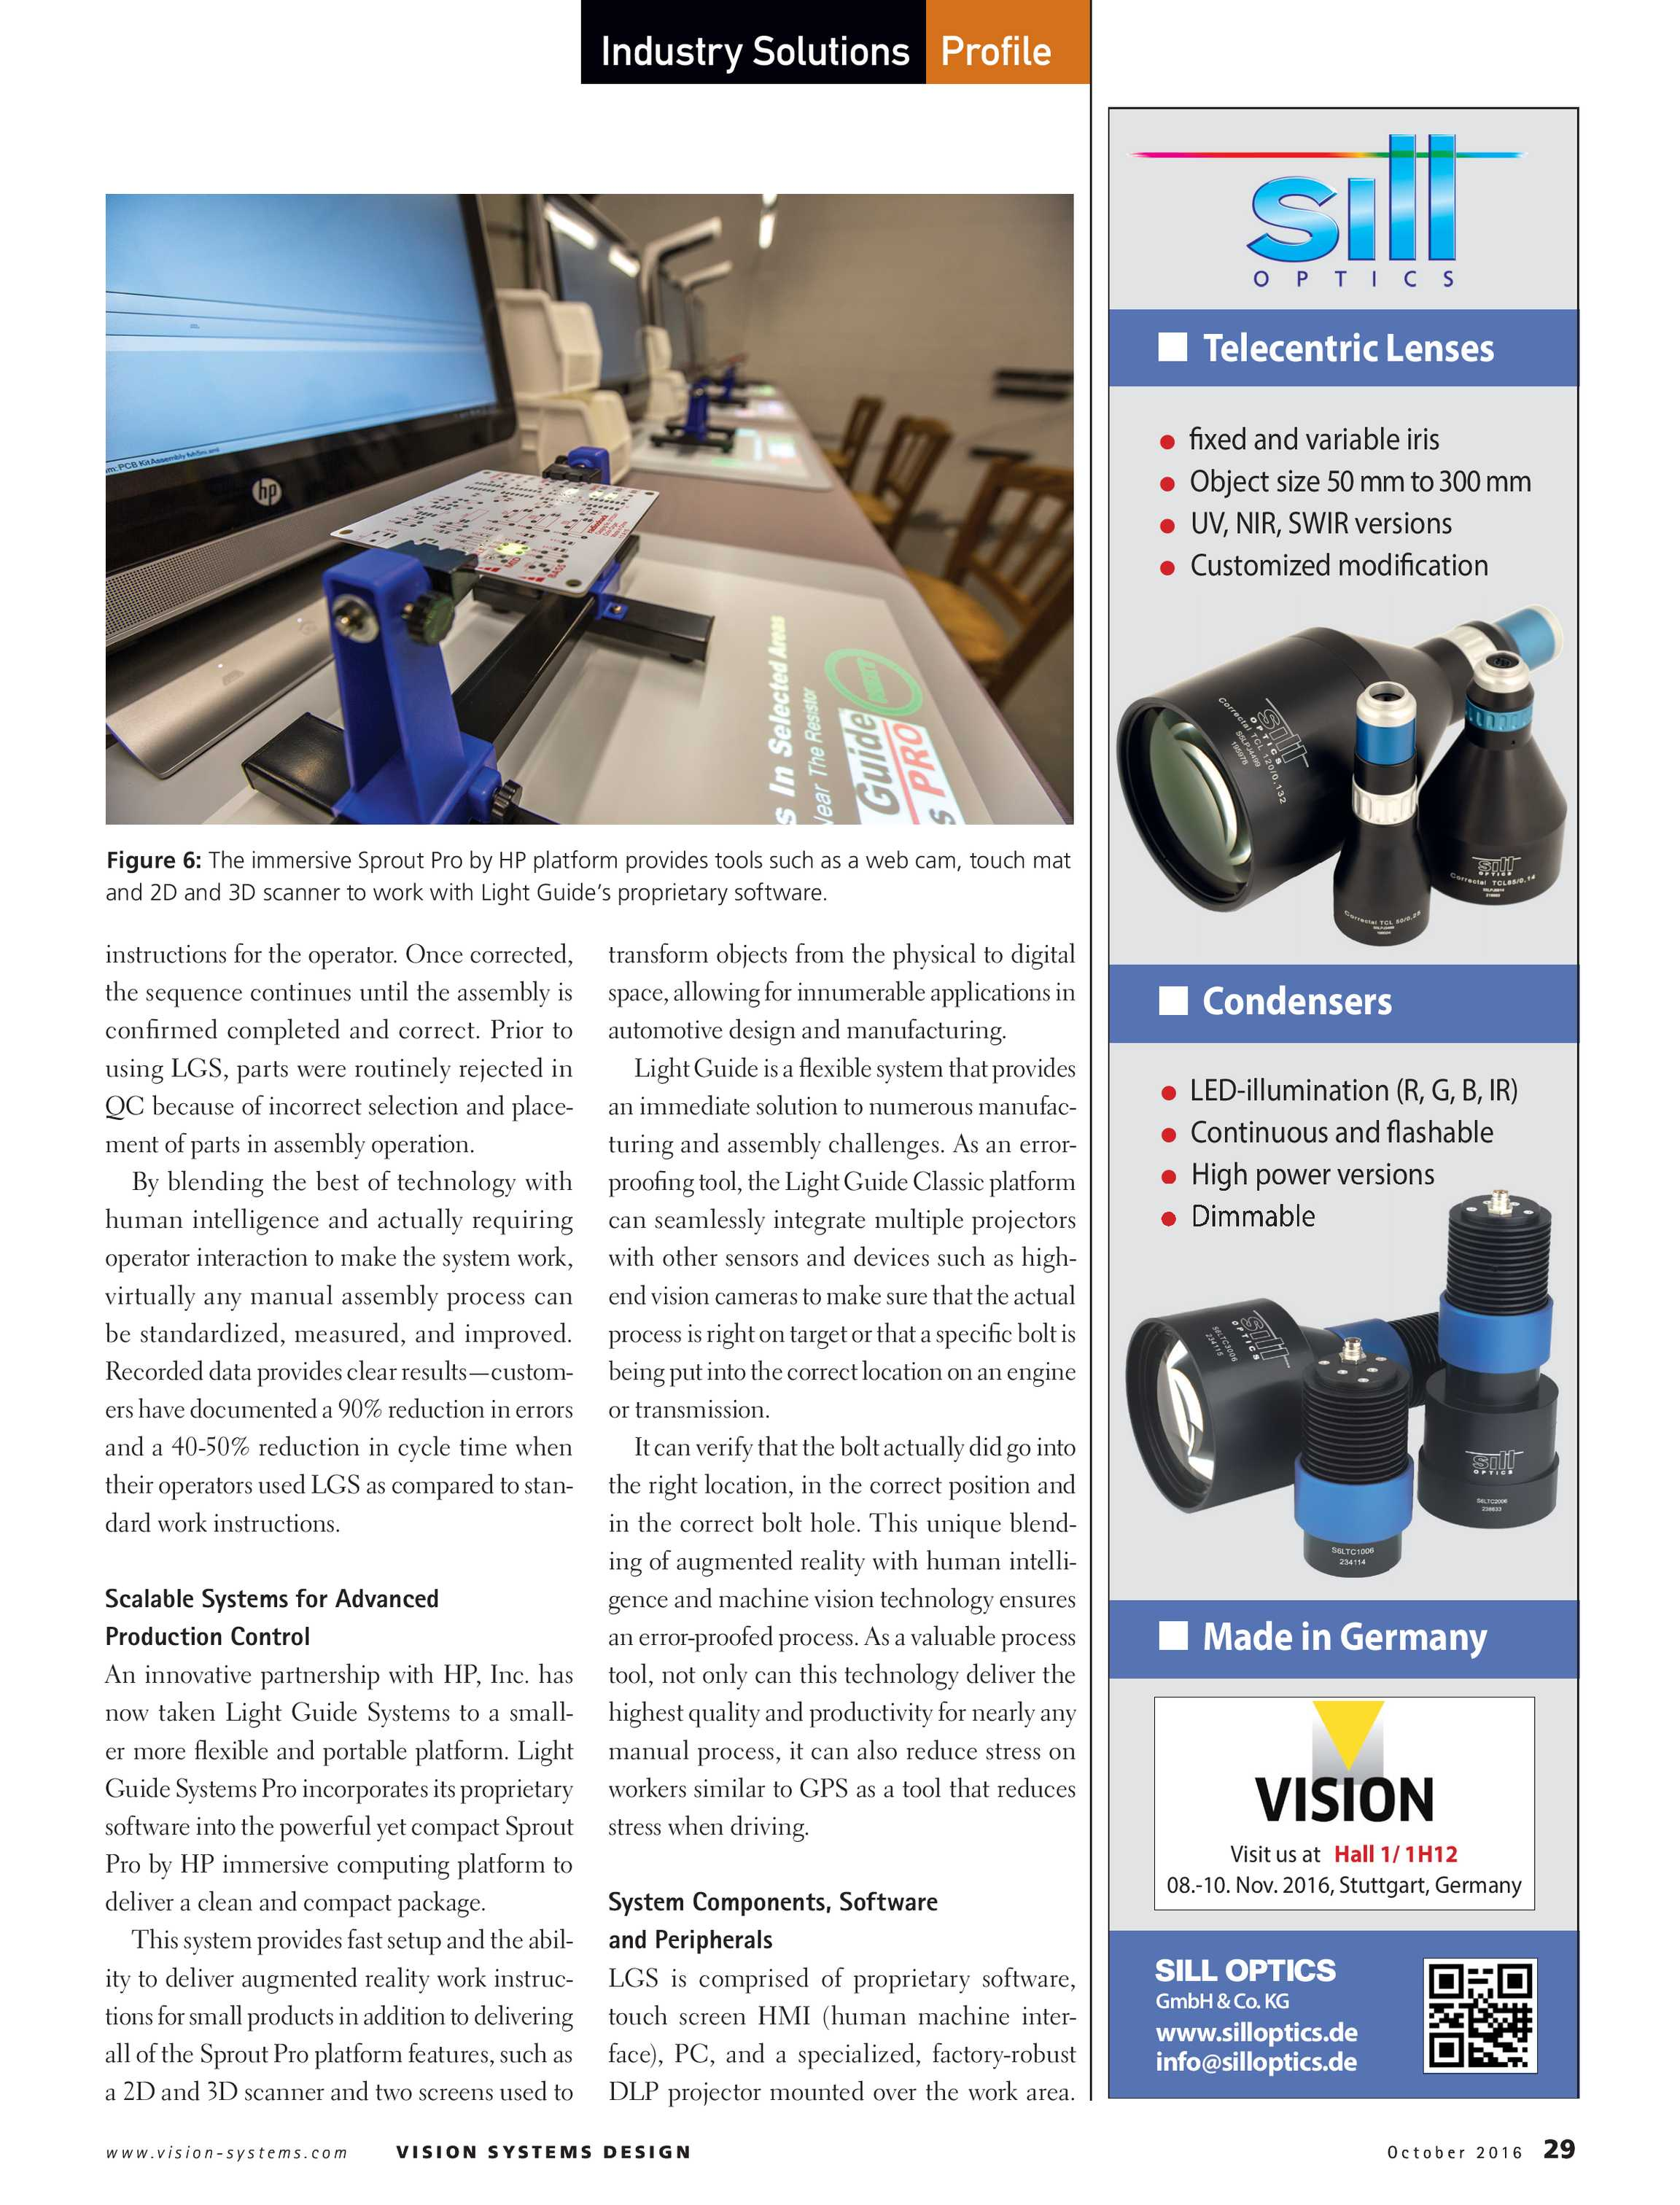 Vision Systems - October 2016 - page 29